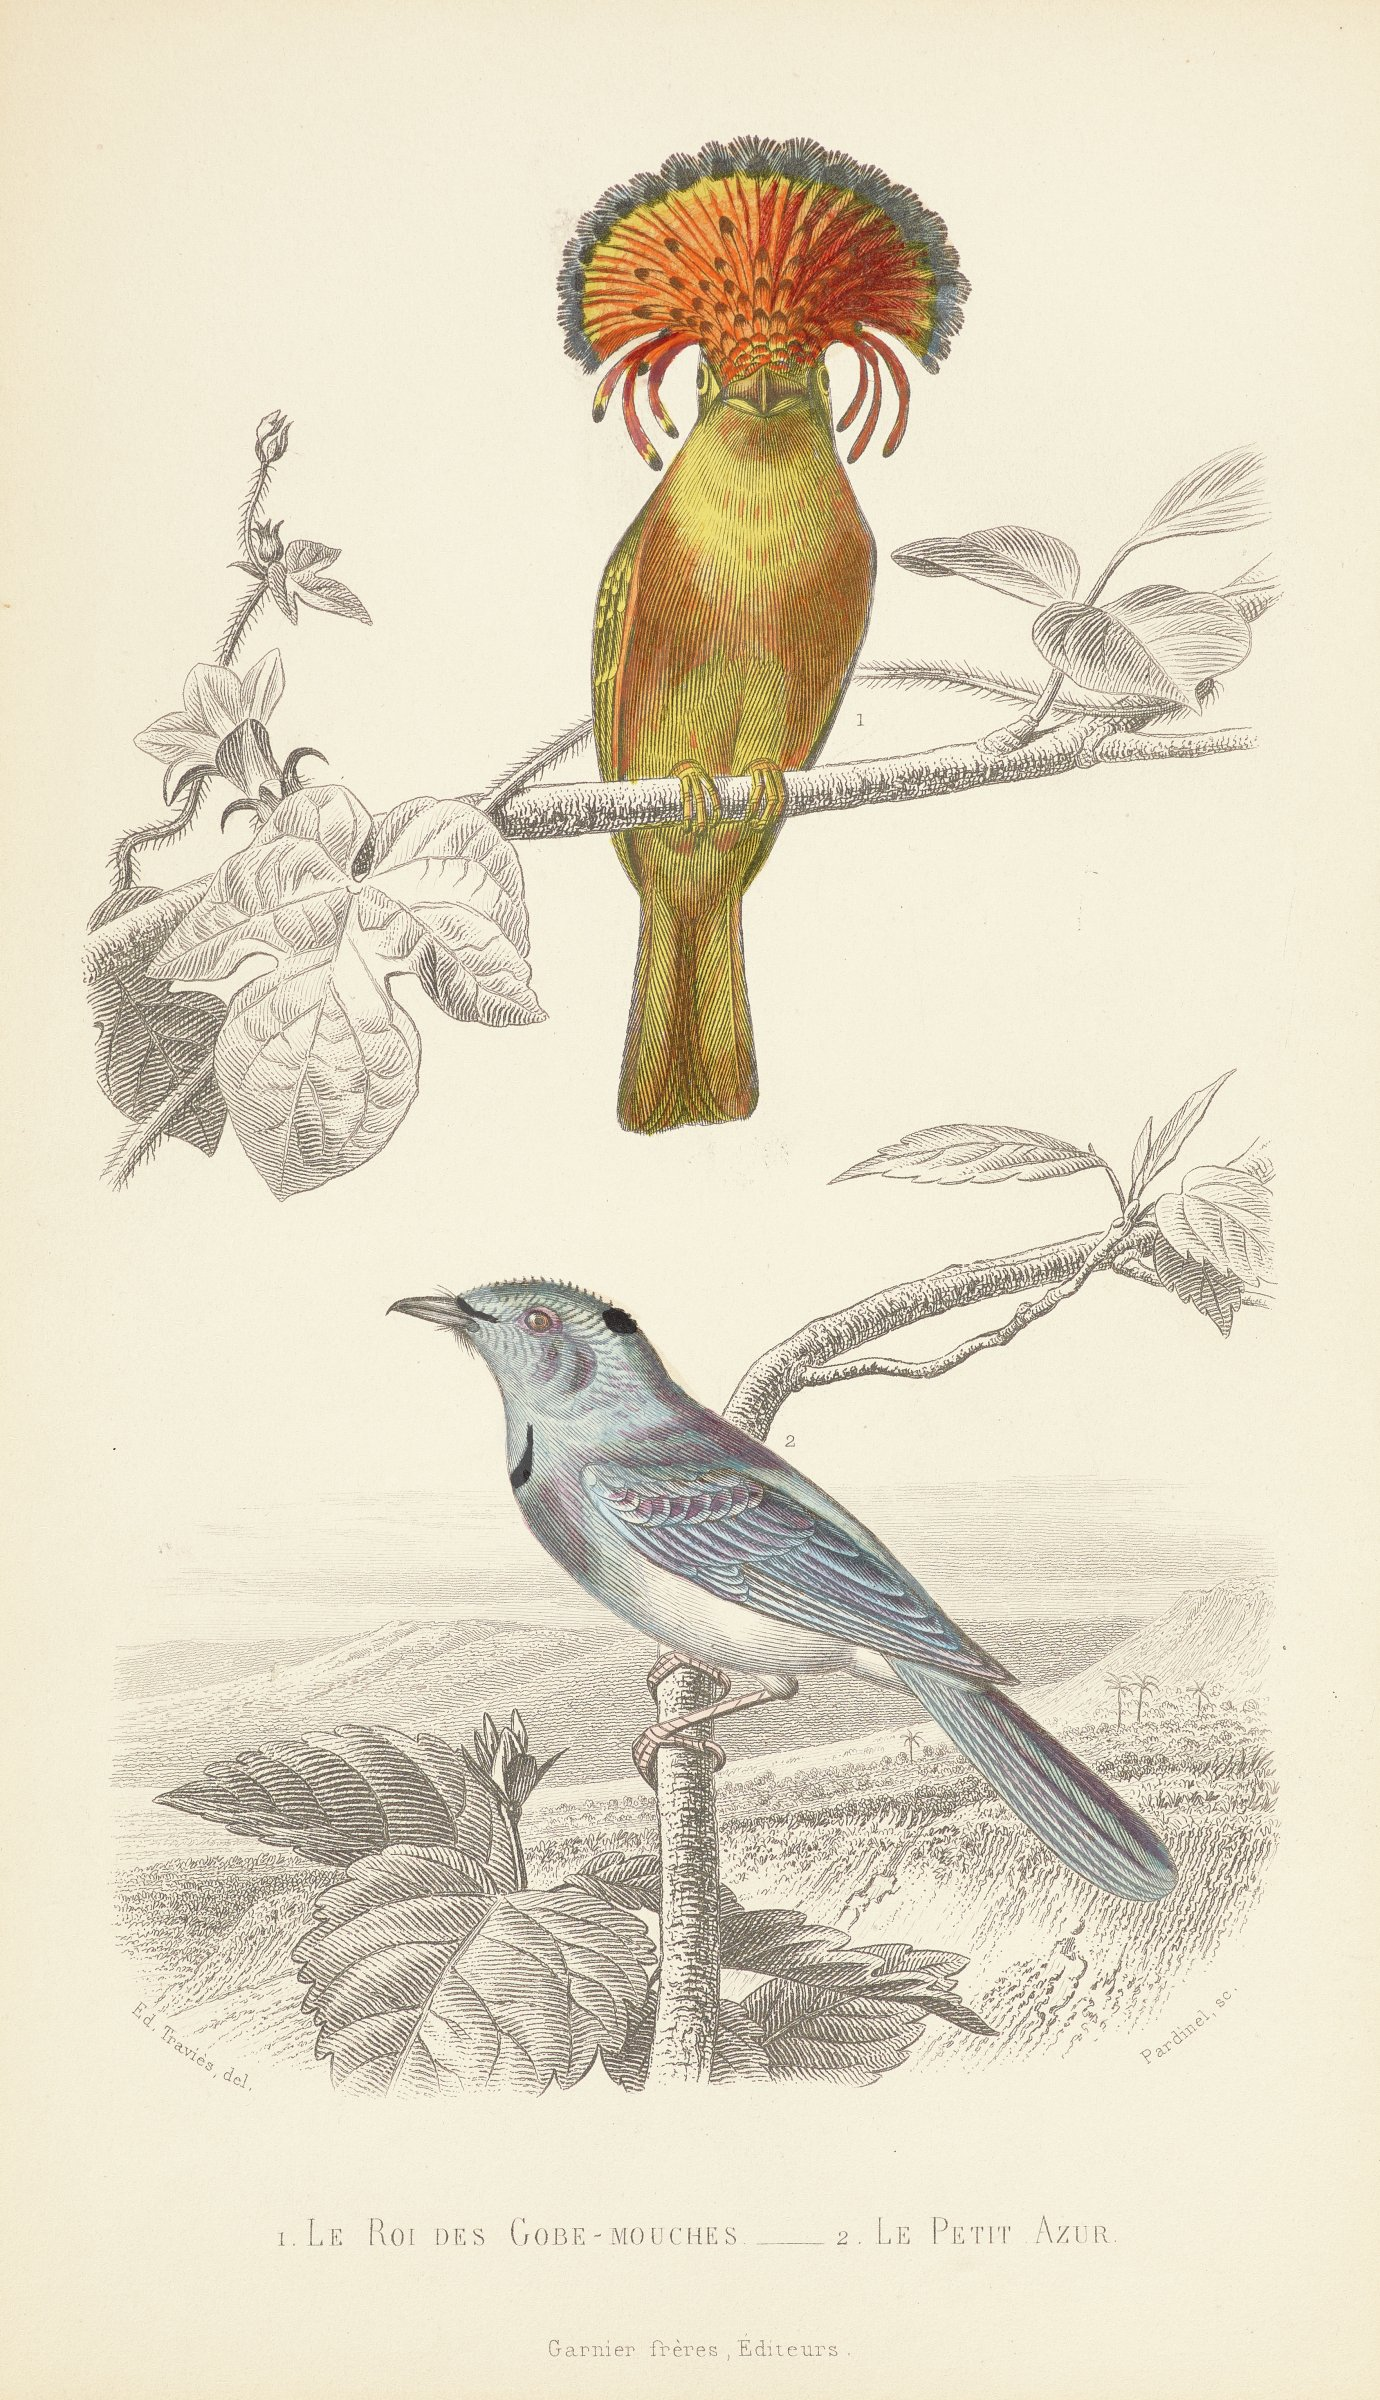 Two hand-colored birds stand uncolored tree branches against uncolored landscape. The upper bird has blue, yellow, and red feathers with a crown shaped feather formation on its head. The lower bird has blue, white, and black feather.